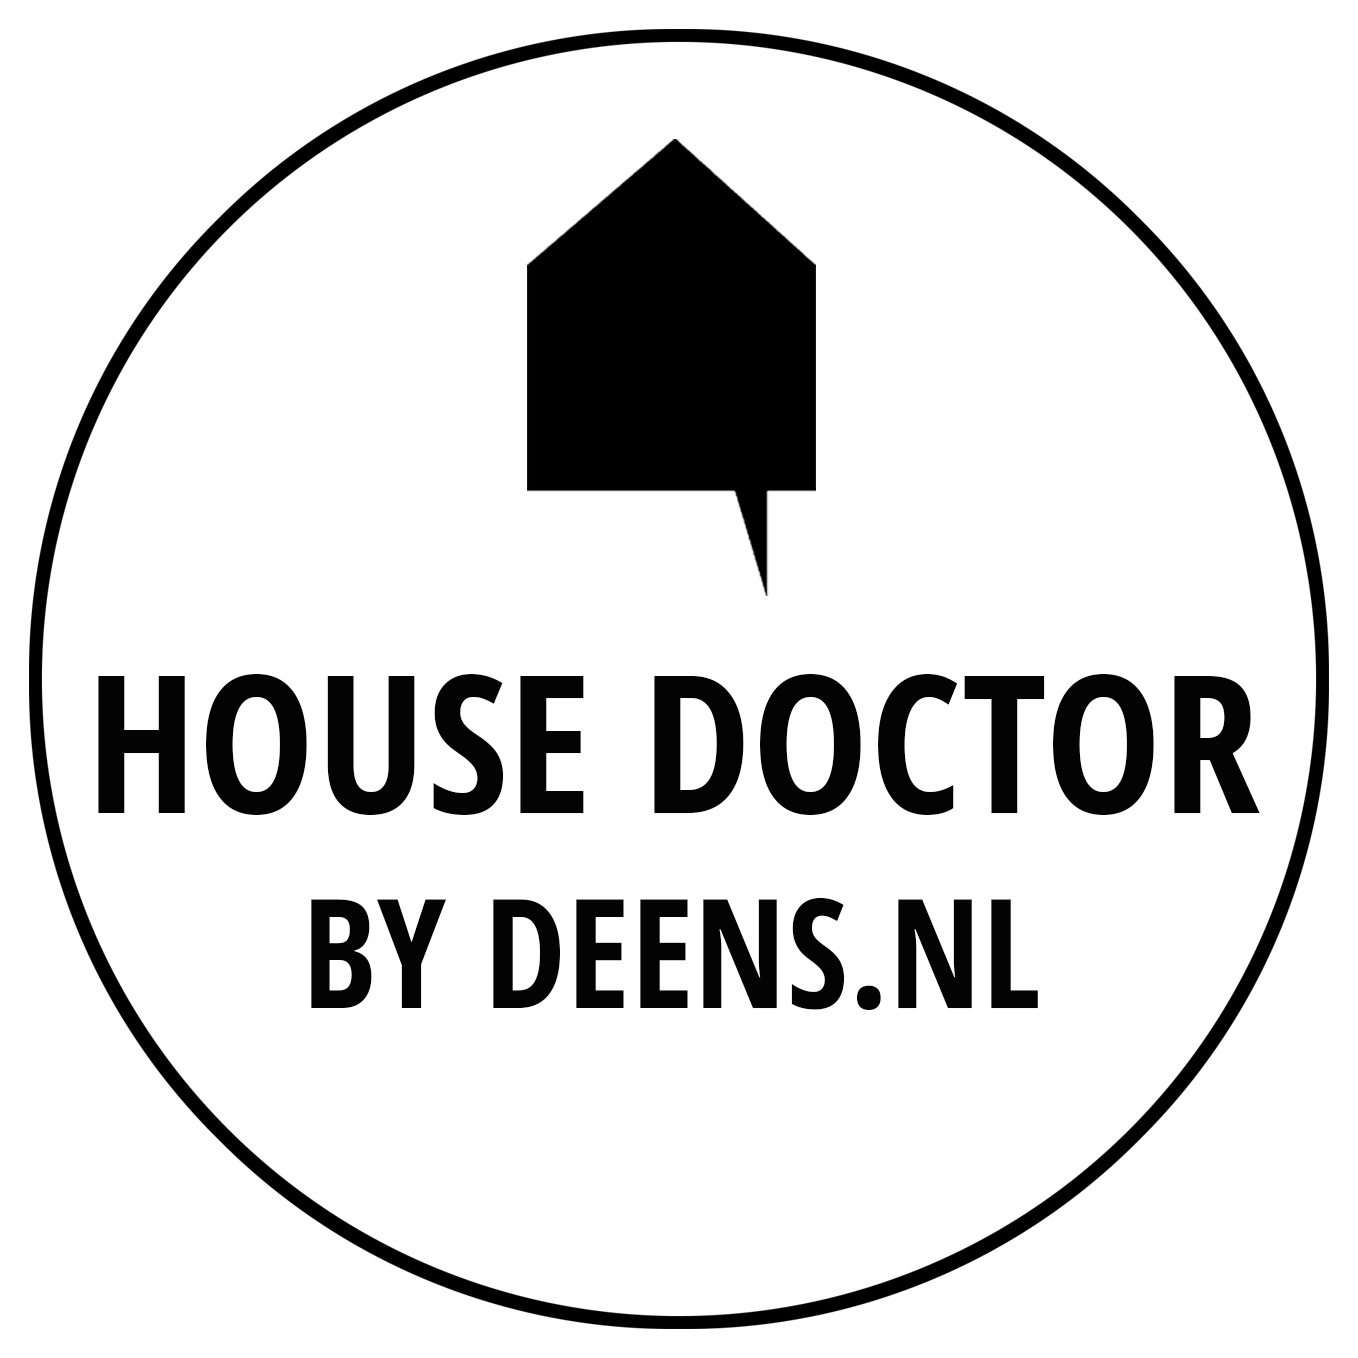 House Doctor by deens.nl